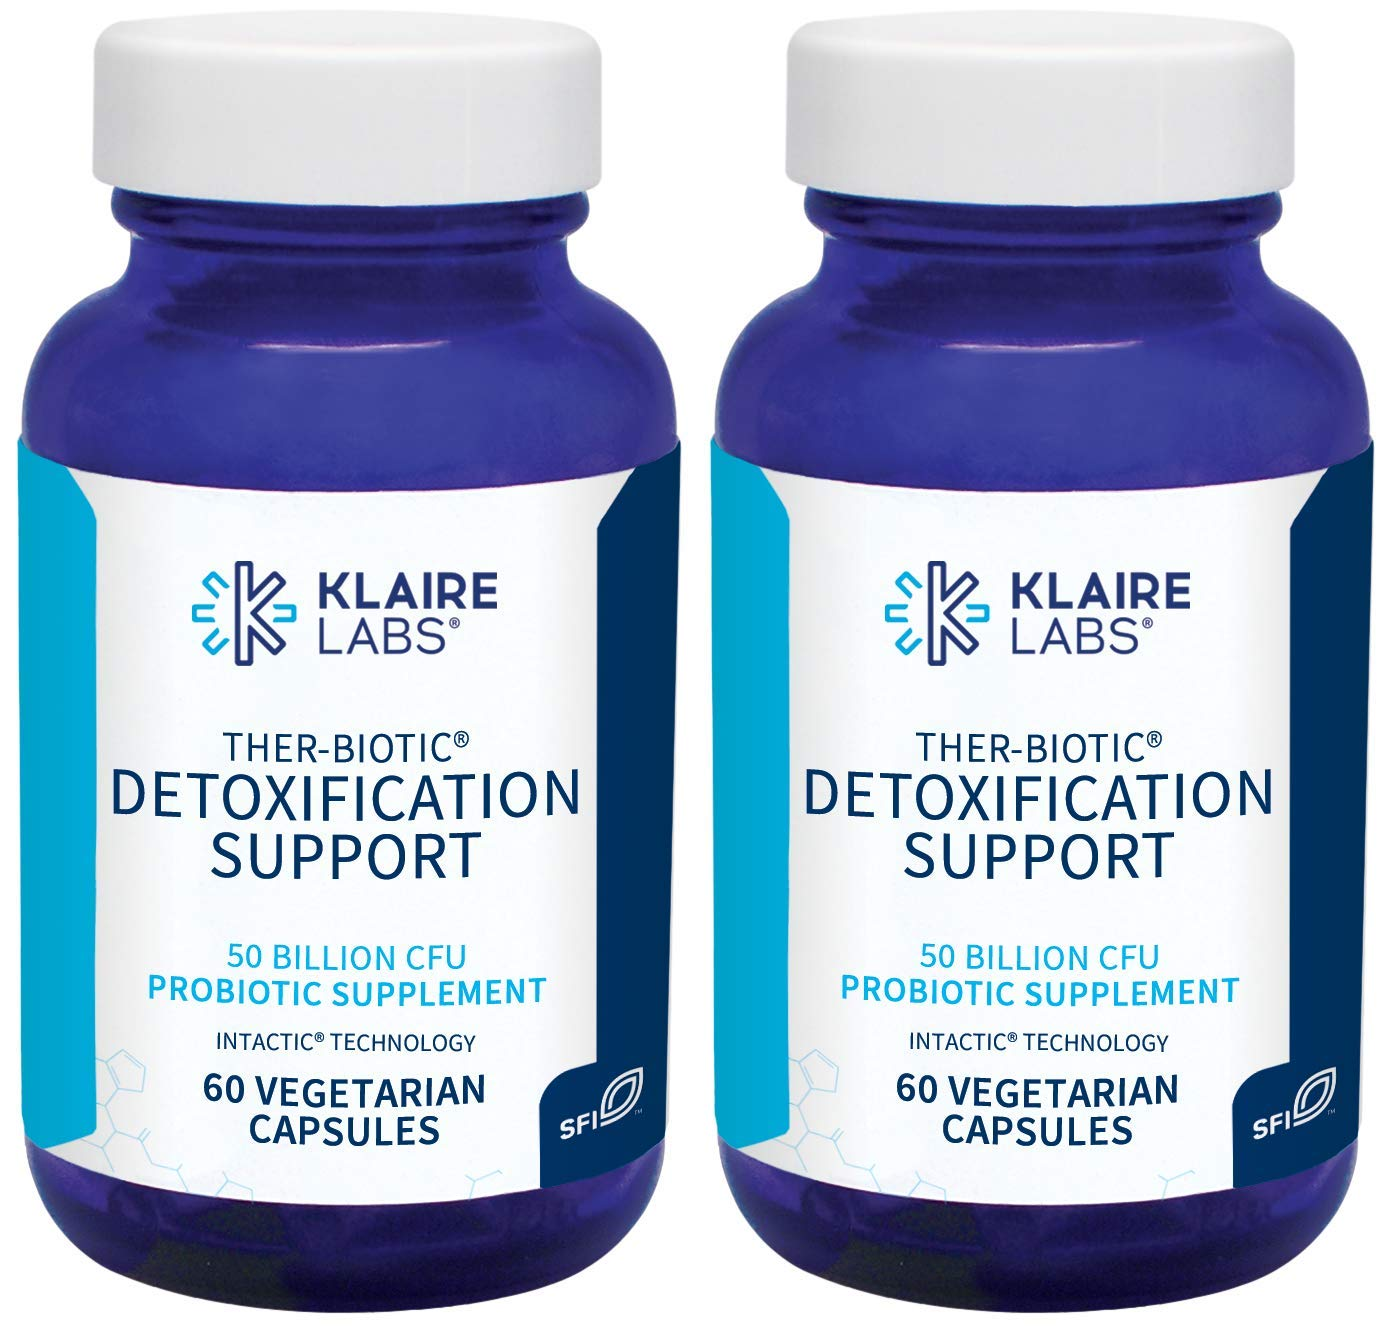 Klaire Labs Ther-Biotic Detoxification Support Probiotic - 50 Billion CFU The Original Hypoallergenic Probiotic for Support During Detox Programs, Dairy-Free (60 Capsules / 2 Pack)